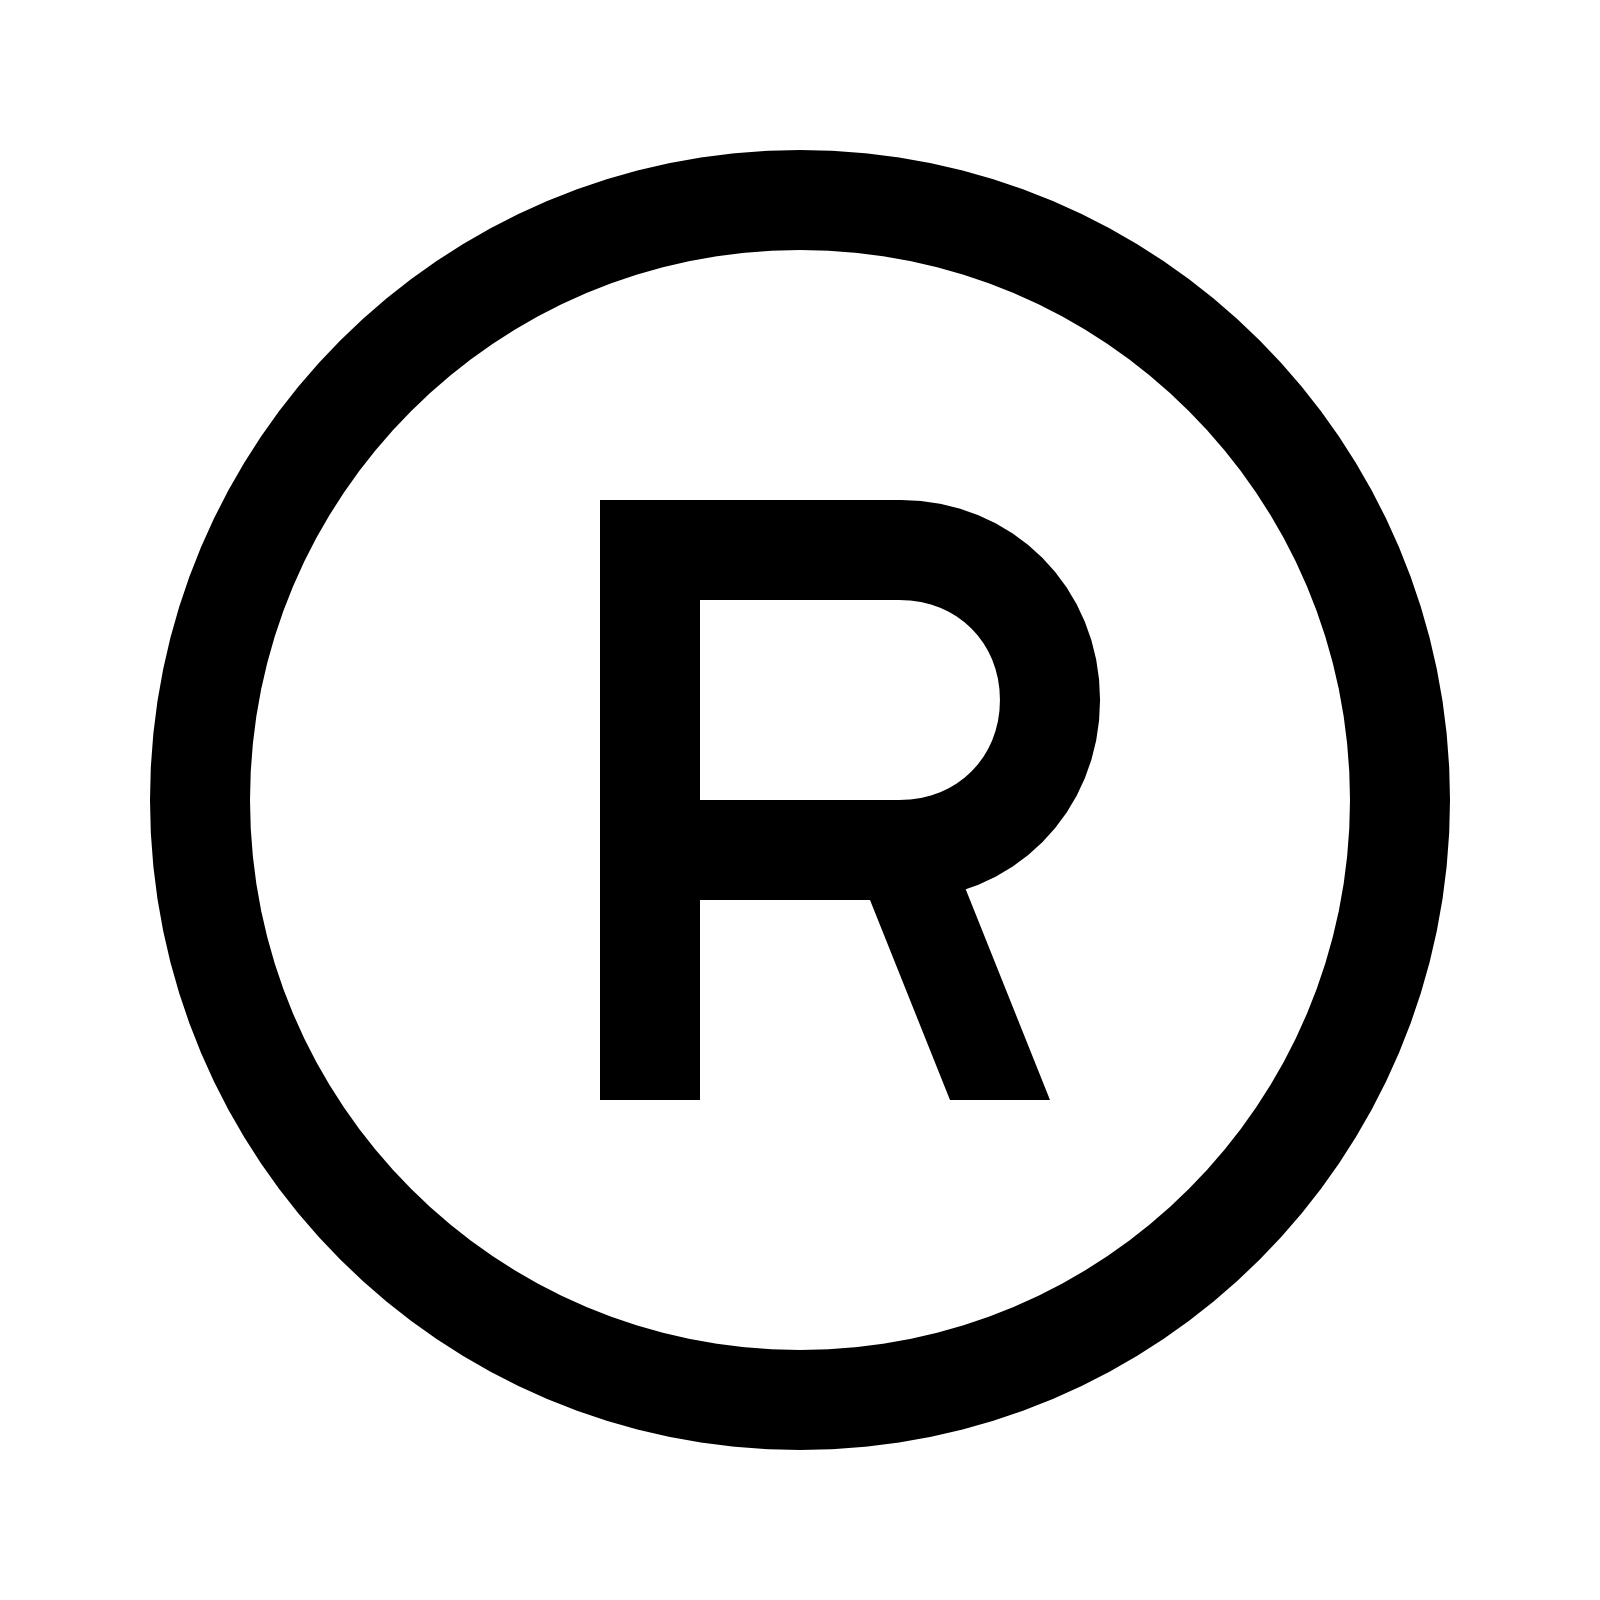 Copyright r symbol registered. Circle clipart translucent